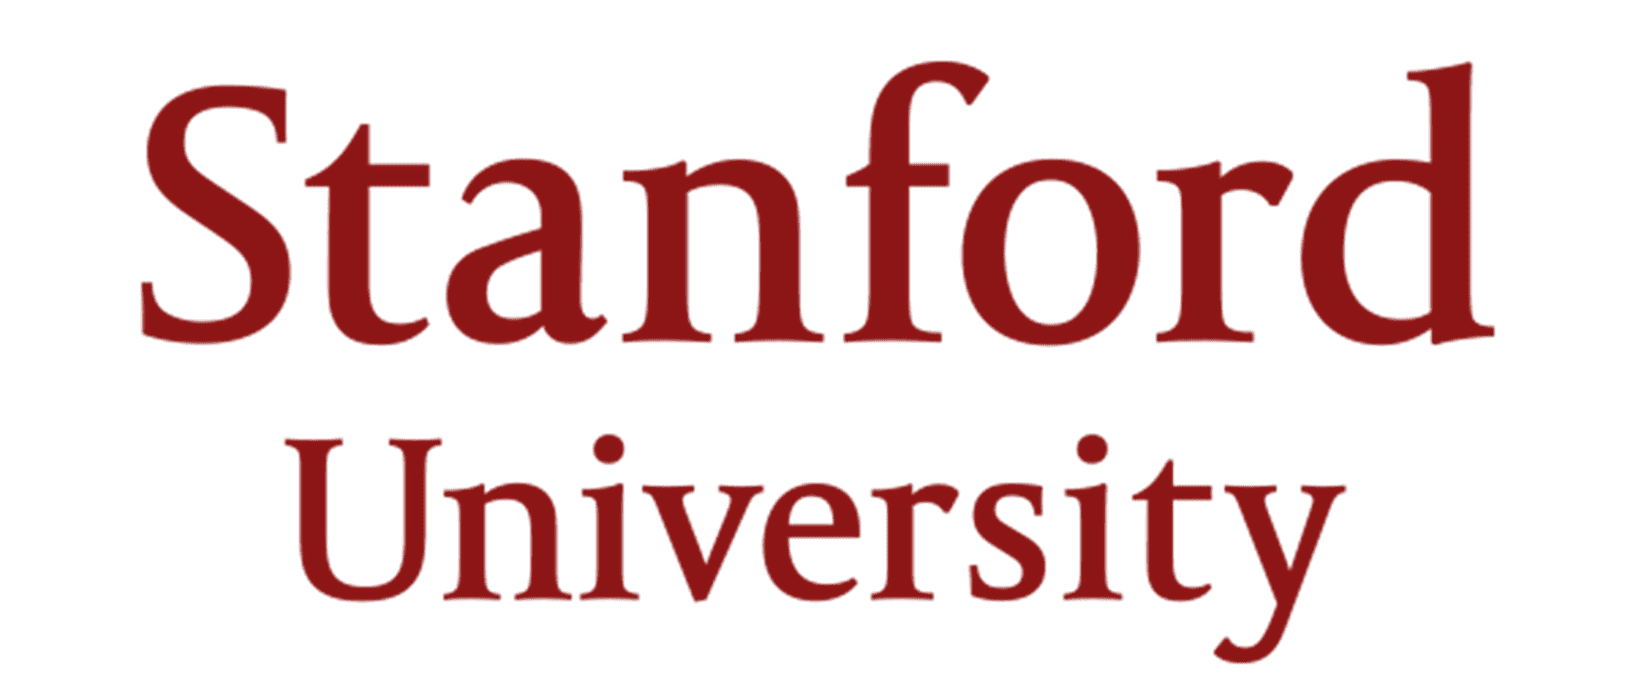 Free Online College Courses From Top Universities